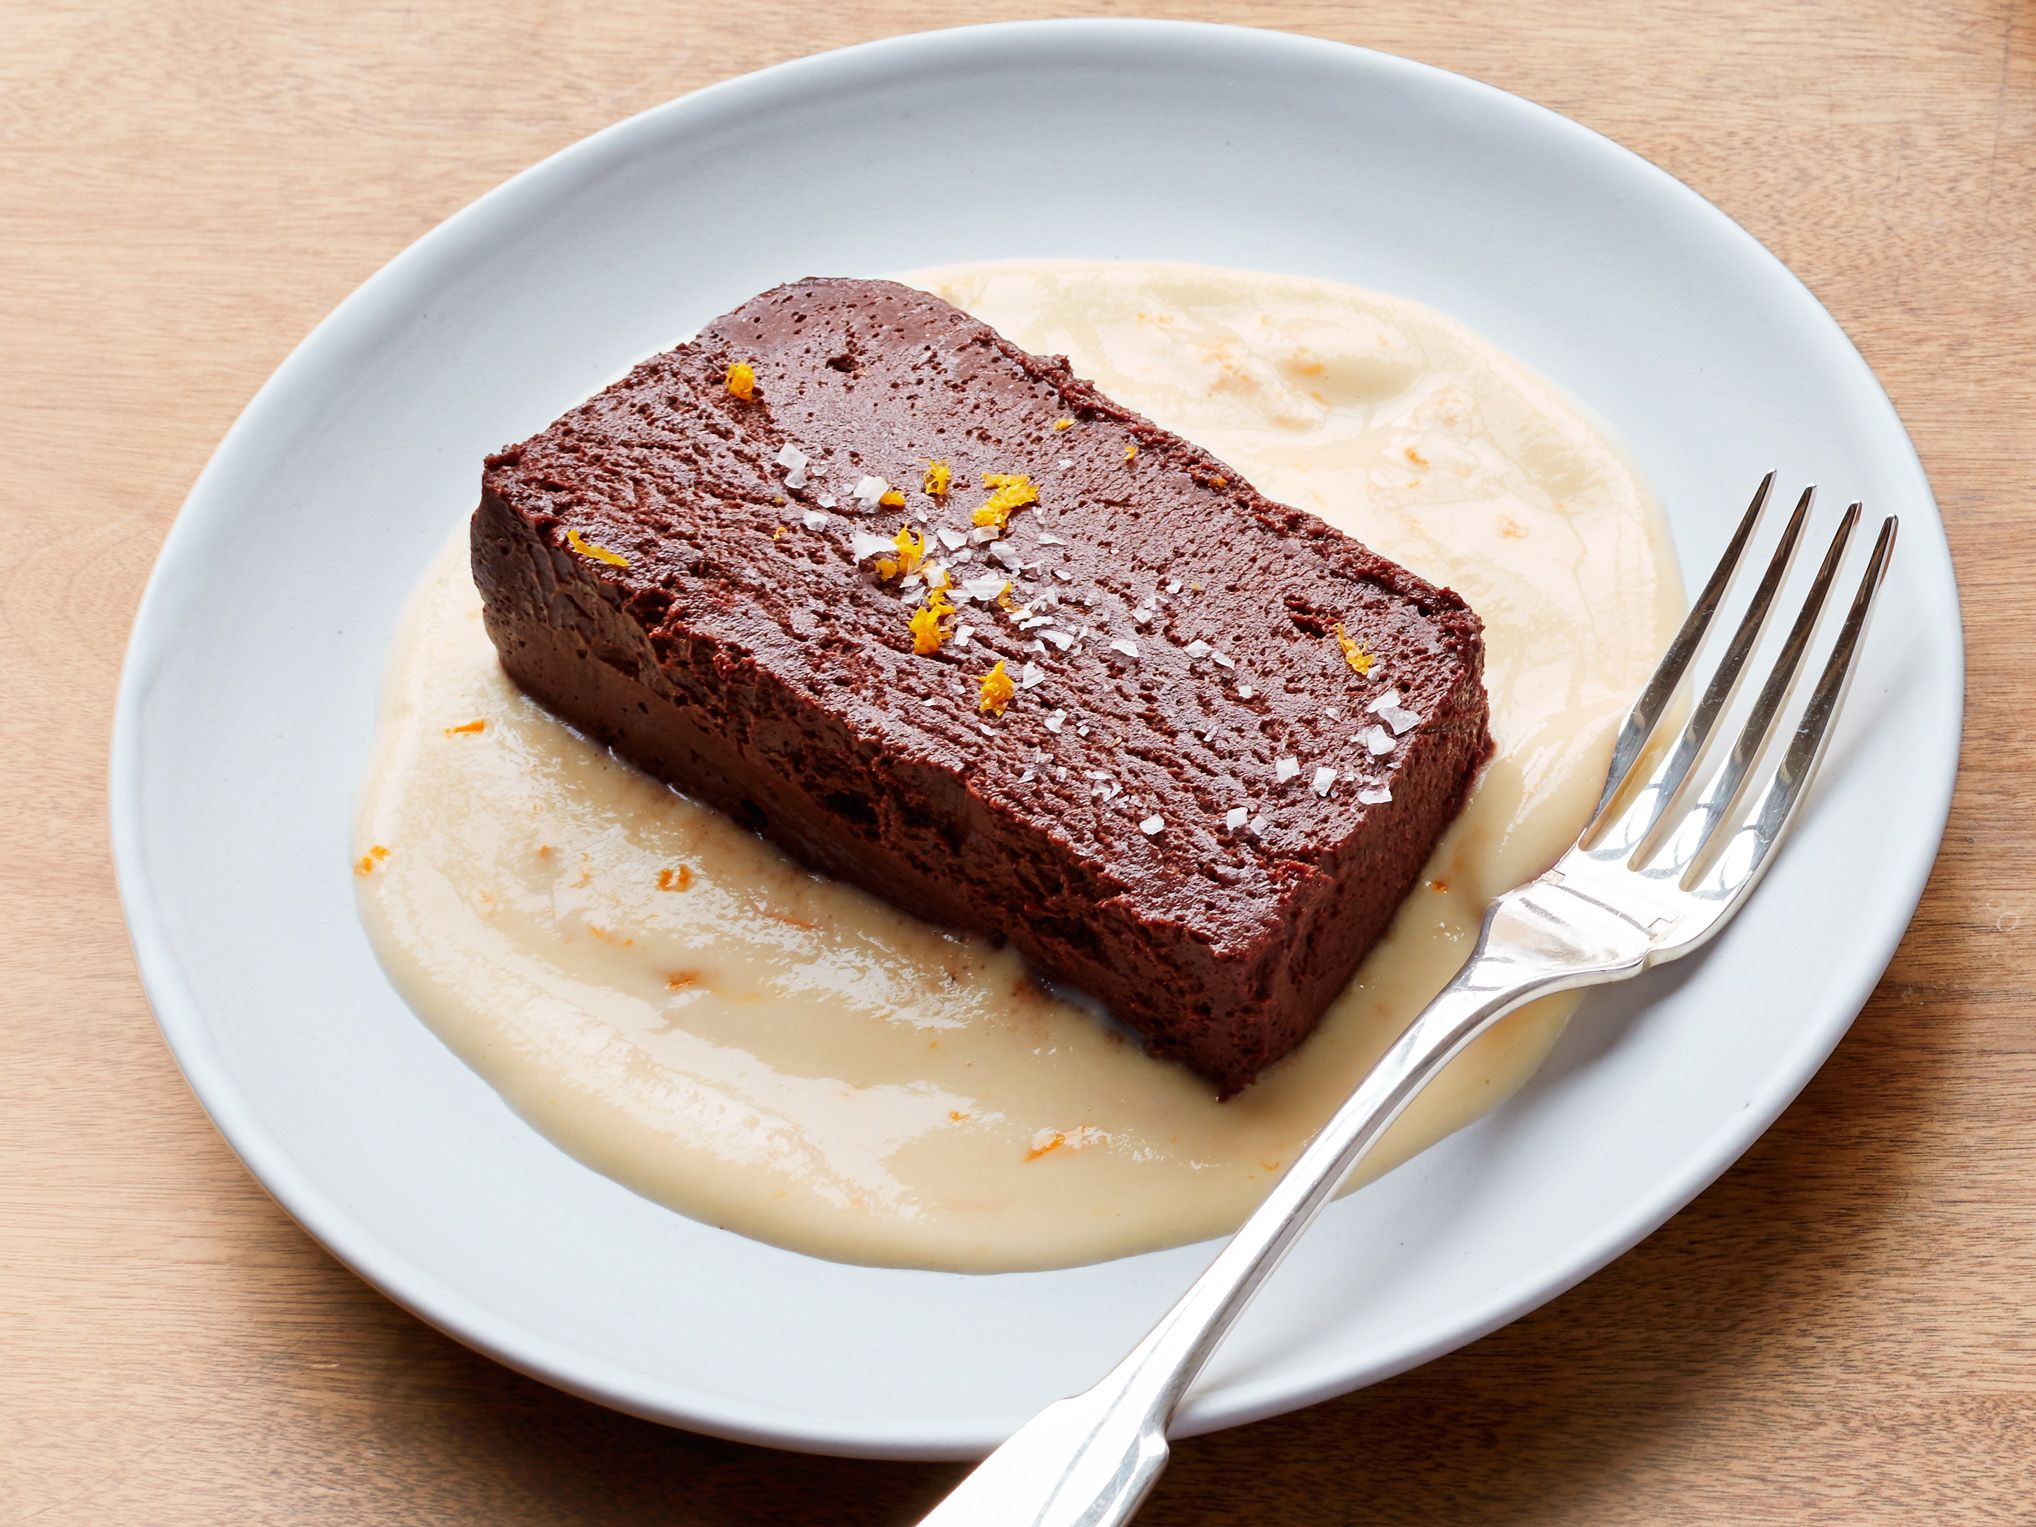 Get this all-star, easy-to-follow Dark Chocolate Terrine recipe from Ina Garten